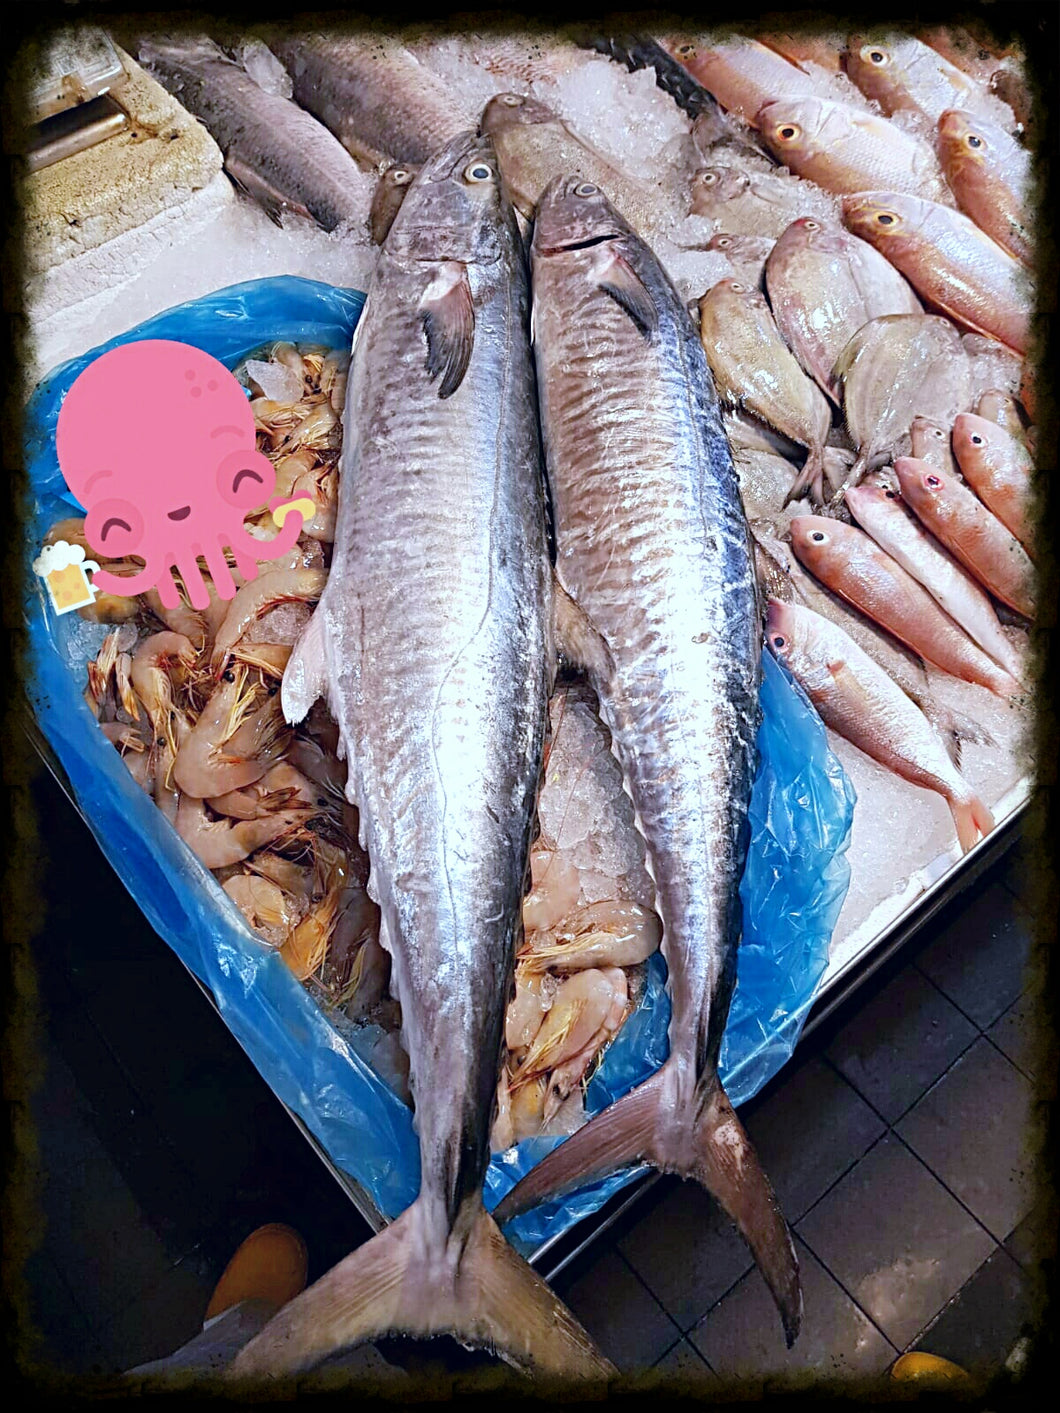 Wild Caught Kingfish aka Batang